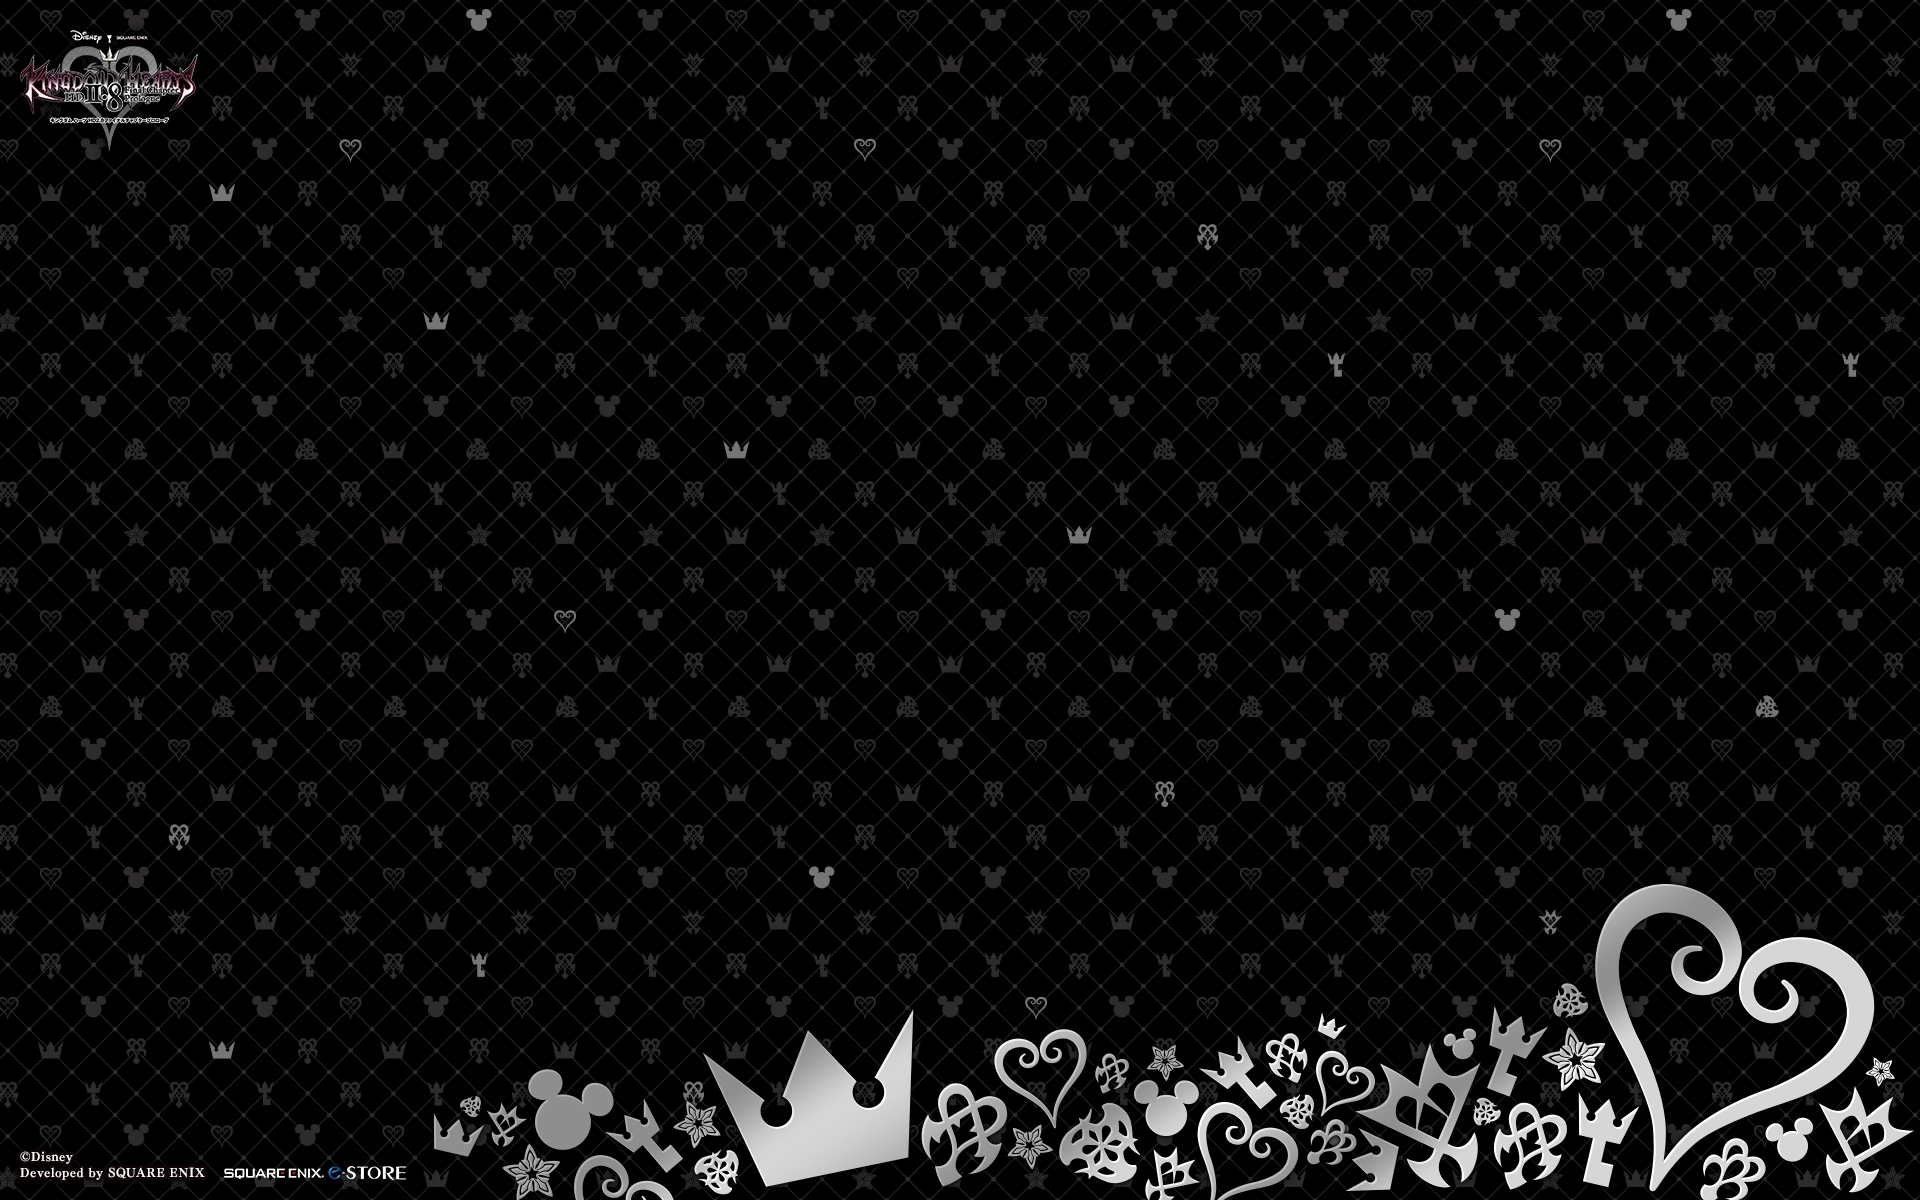 square enix releases kingdom hearts 2.8 pc wallpapers - news